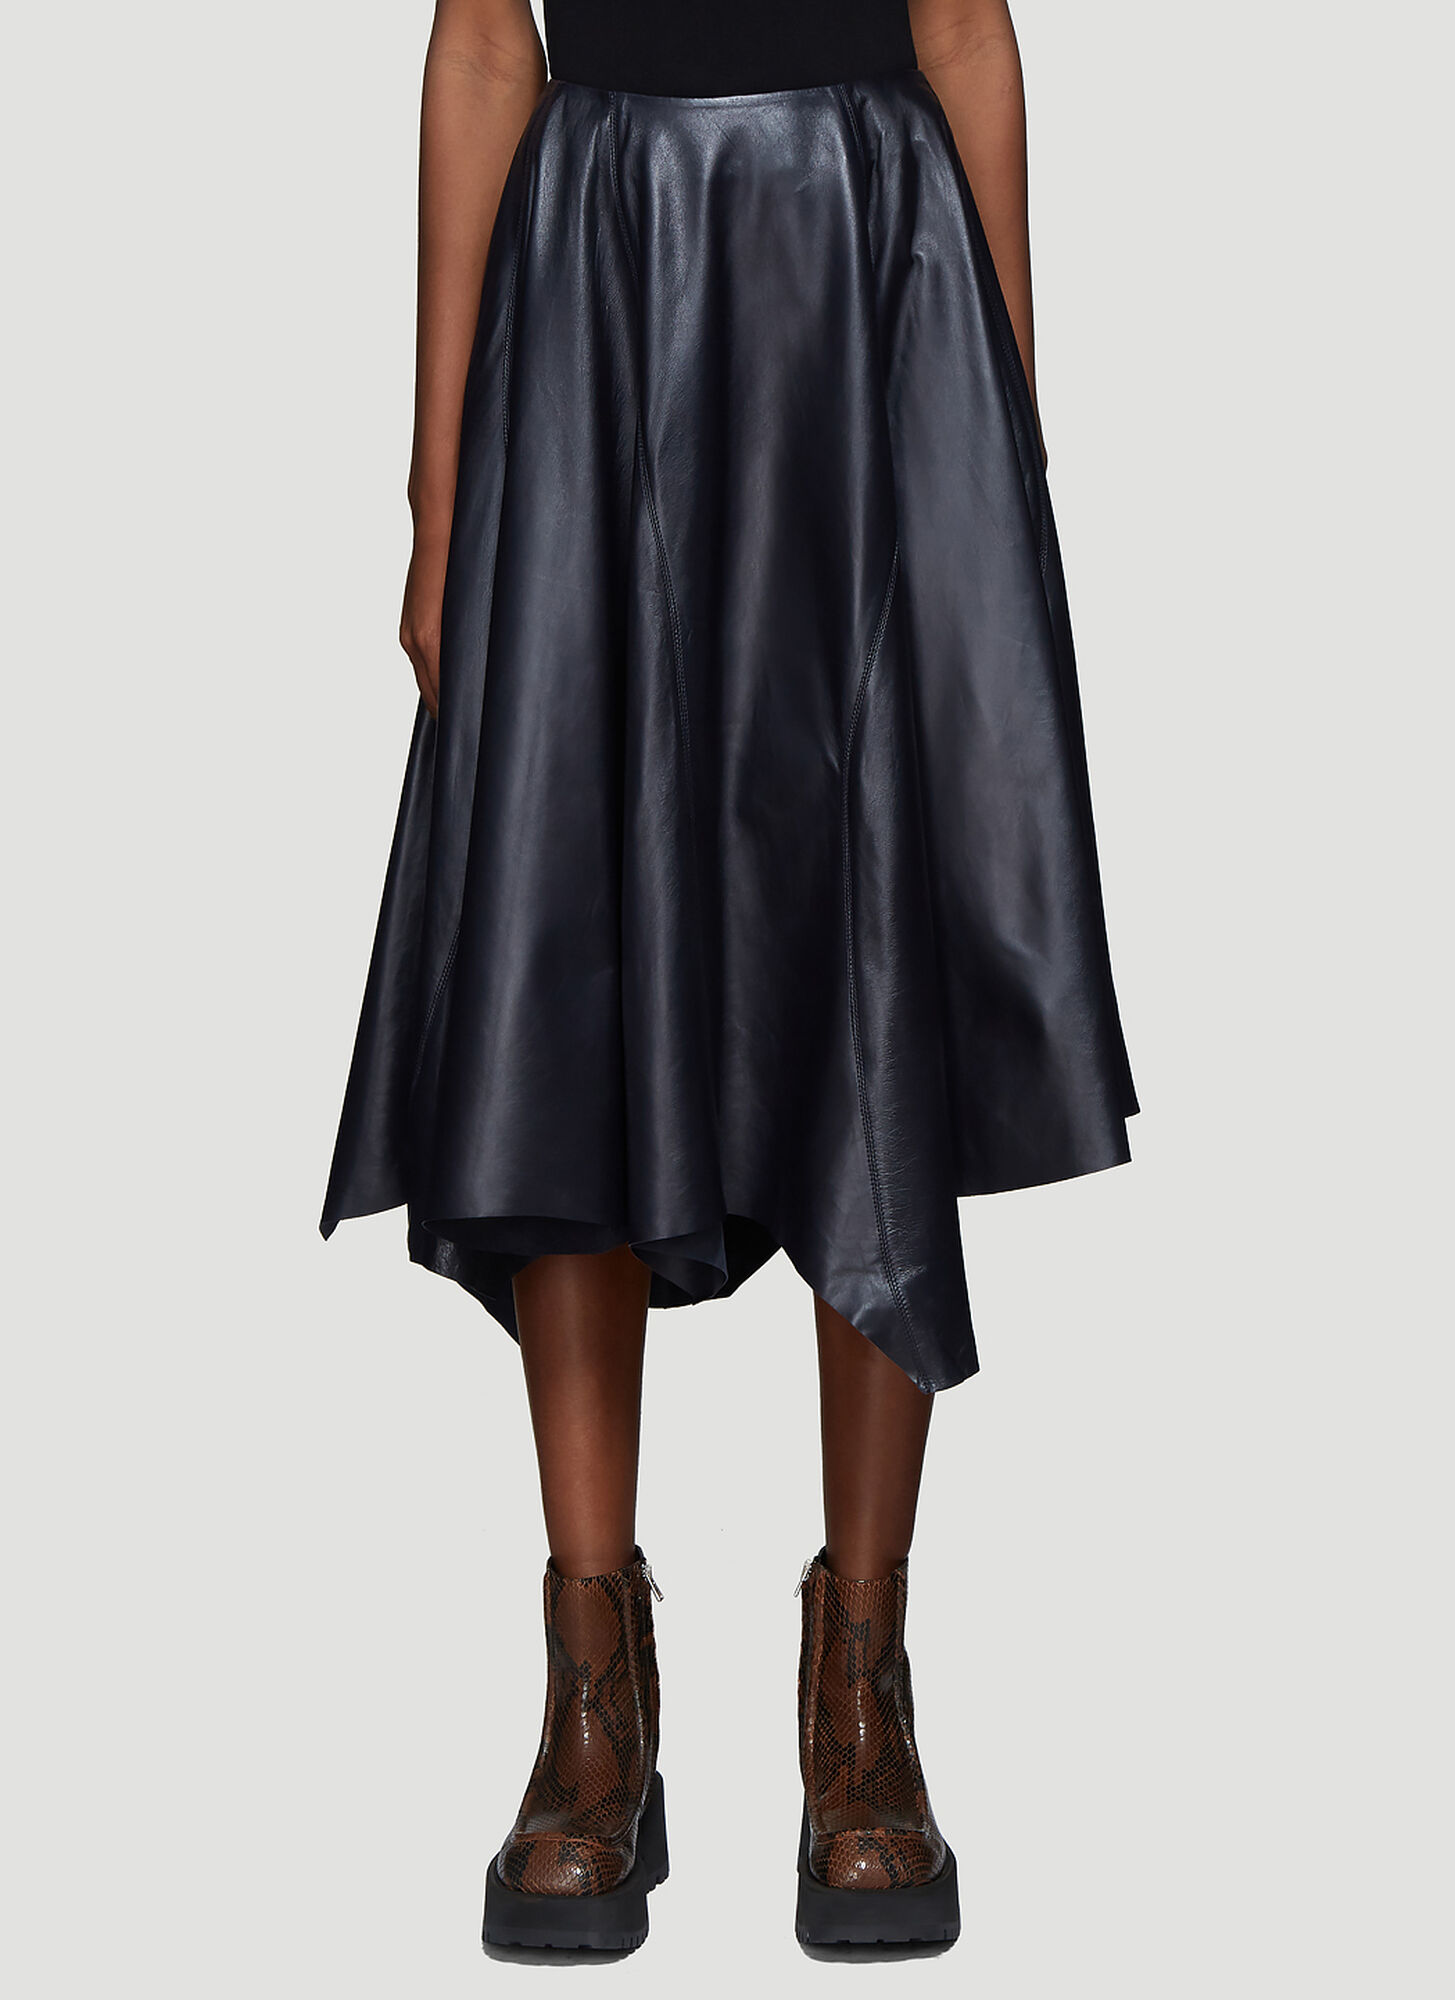 Marni Asymmetric Hem Leather Skirt in Navy